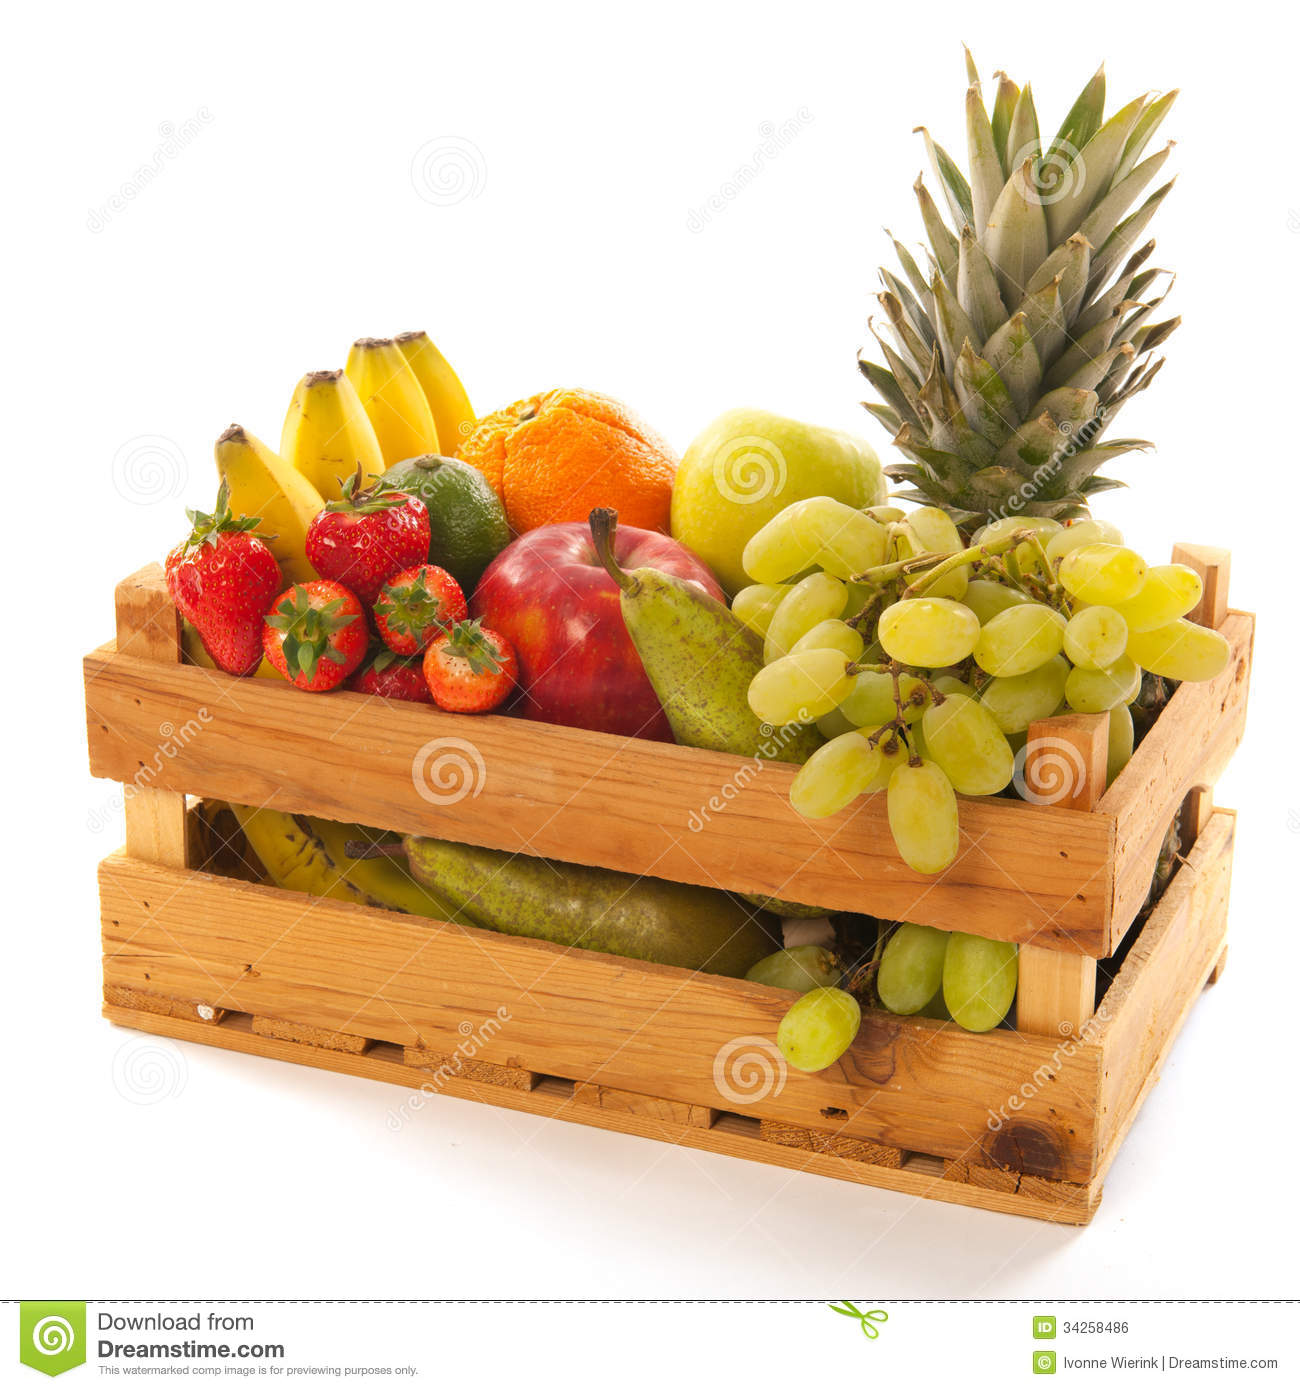 Fruit crate clipart clipground for Wooden fruit crates